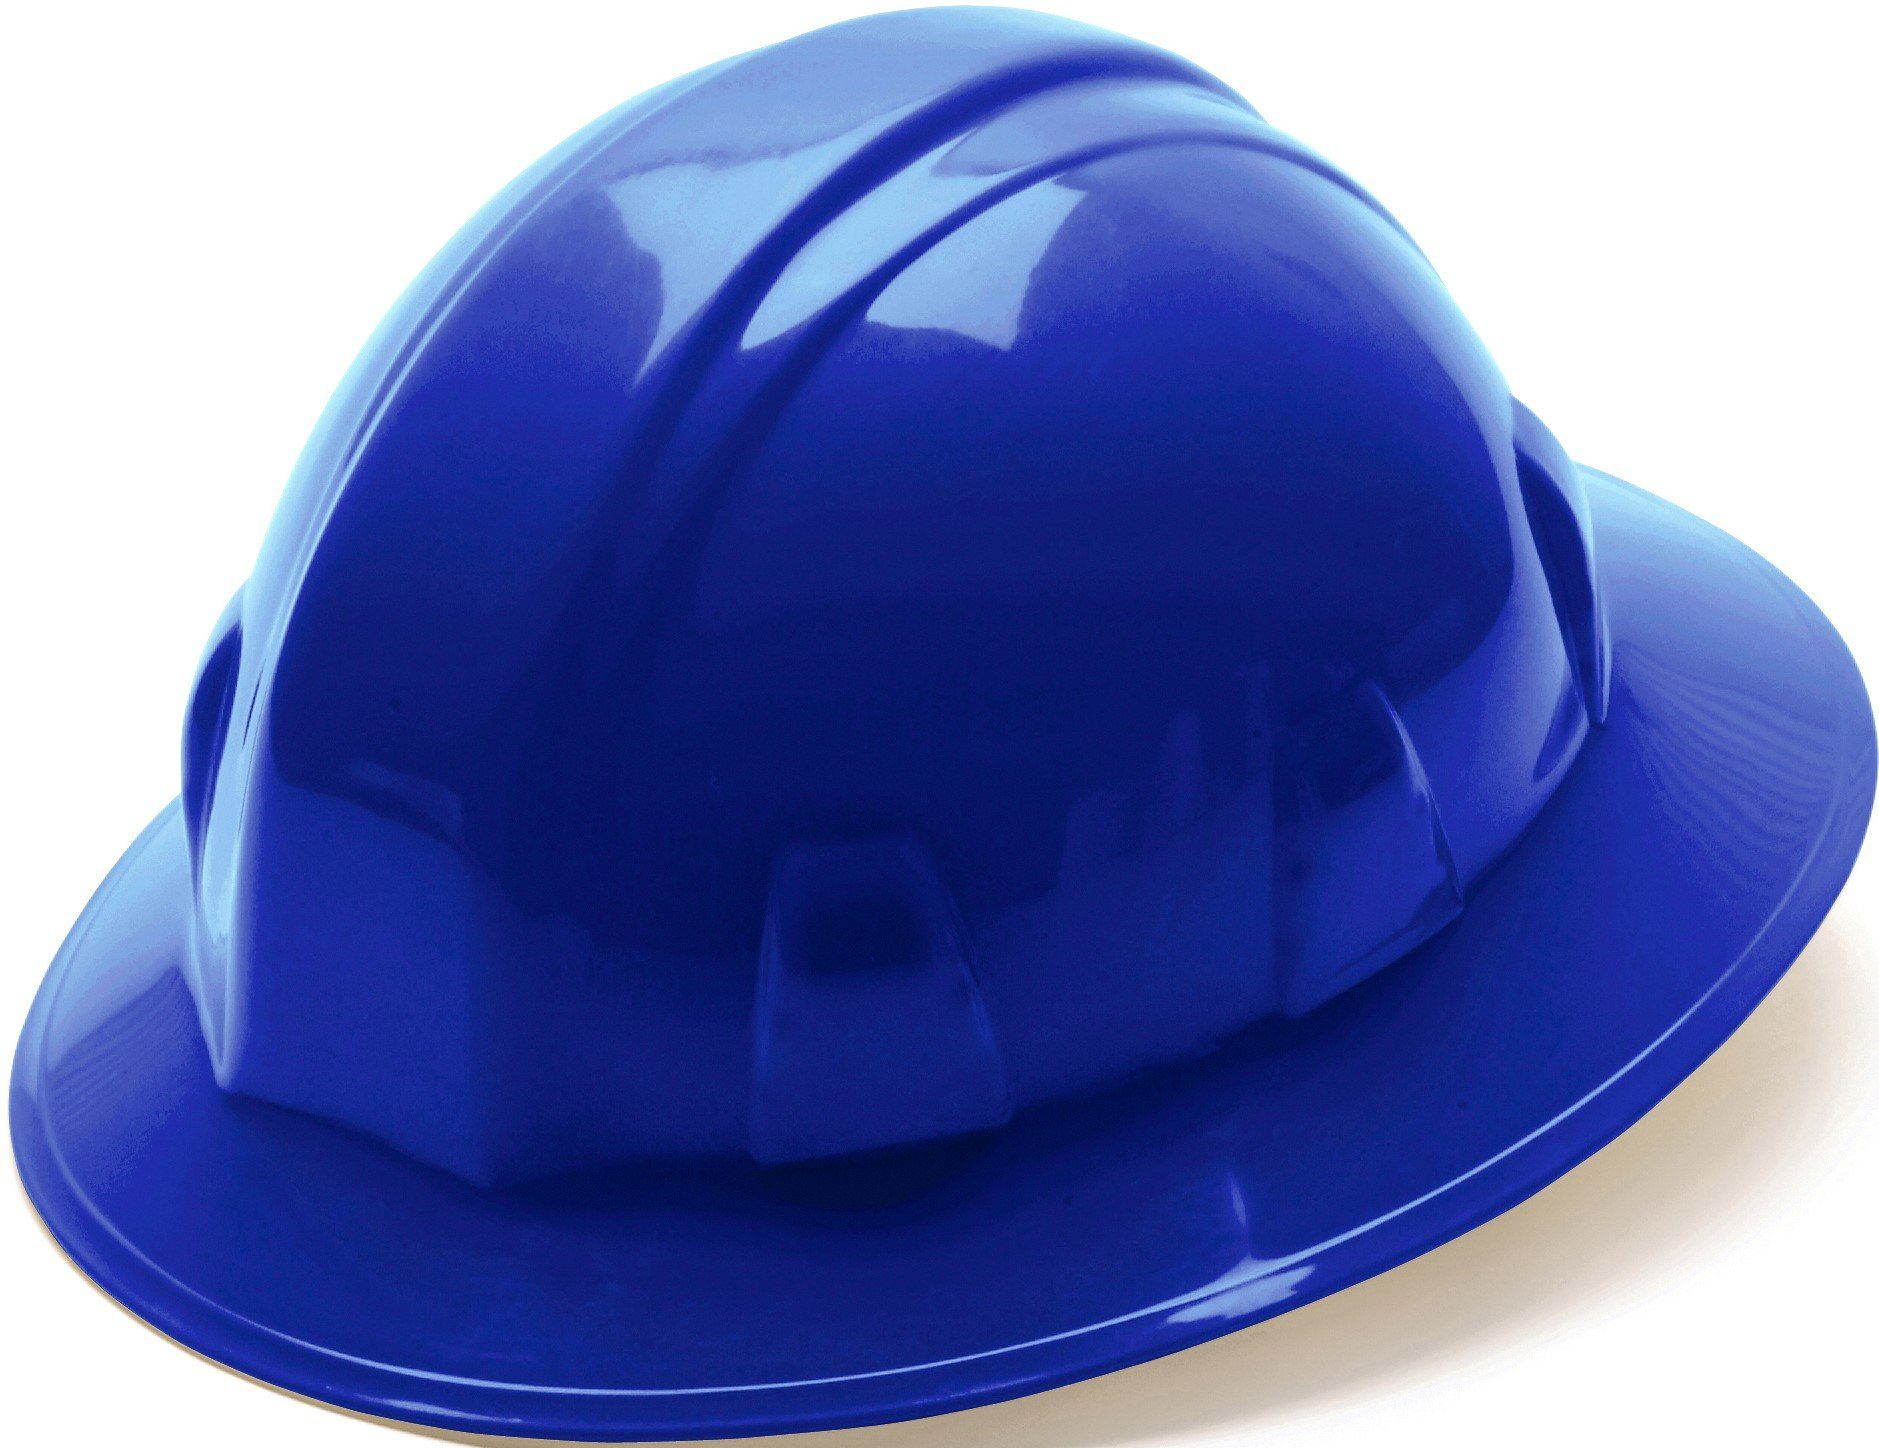 Pyramex Full Brim Style 4-Point Ratchet Suspension Hard Hat – Fits Most Head Sizes – Optimal Protection – Comfortable Design – Included Rain Trough – Low Profile – Blue